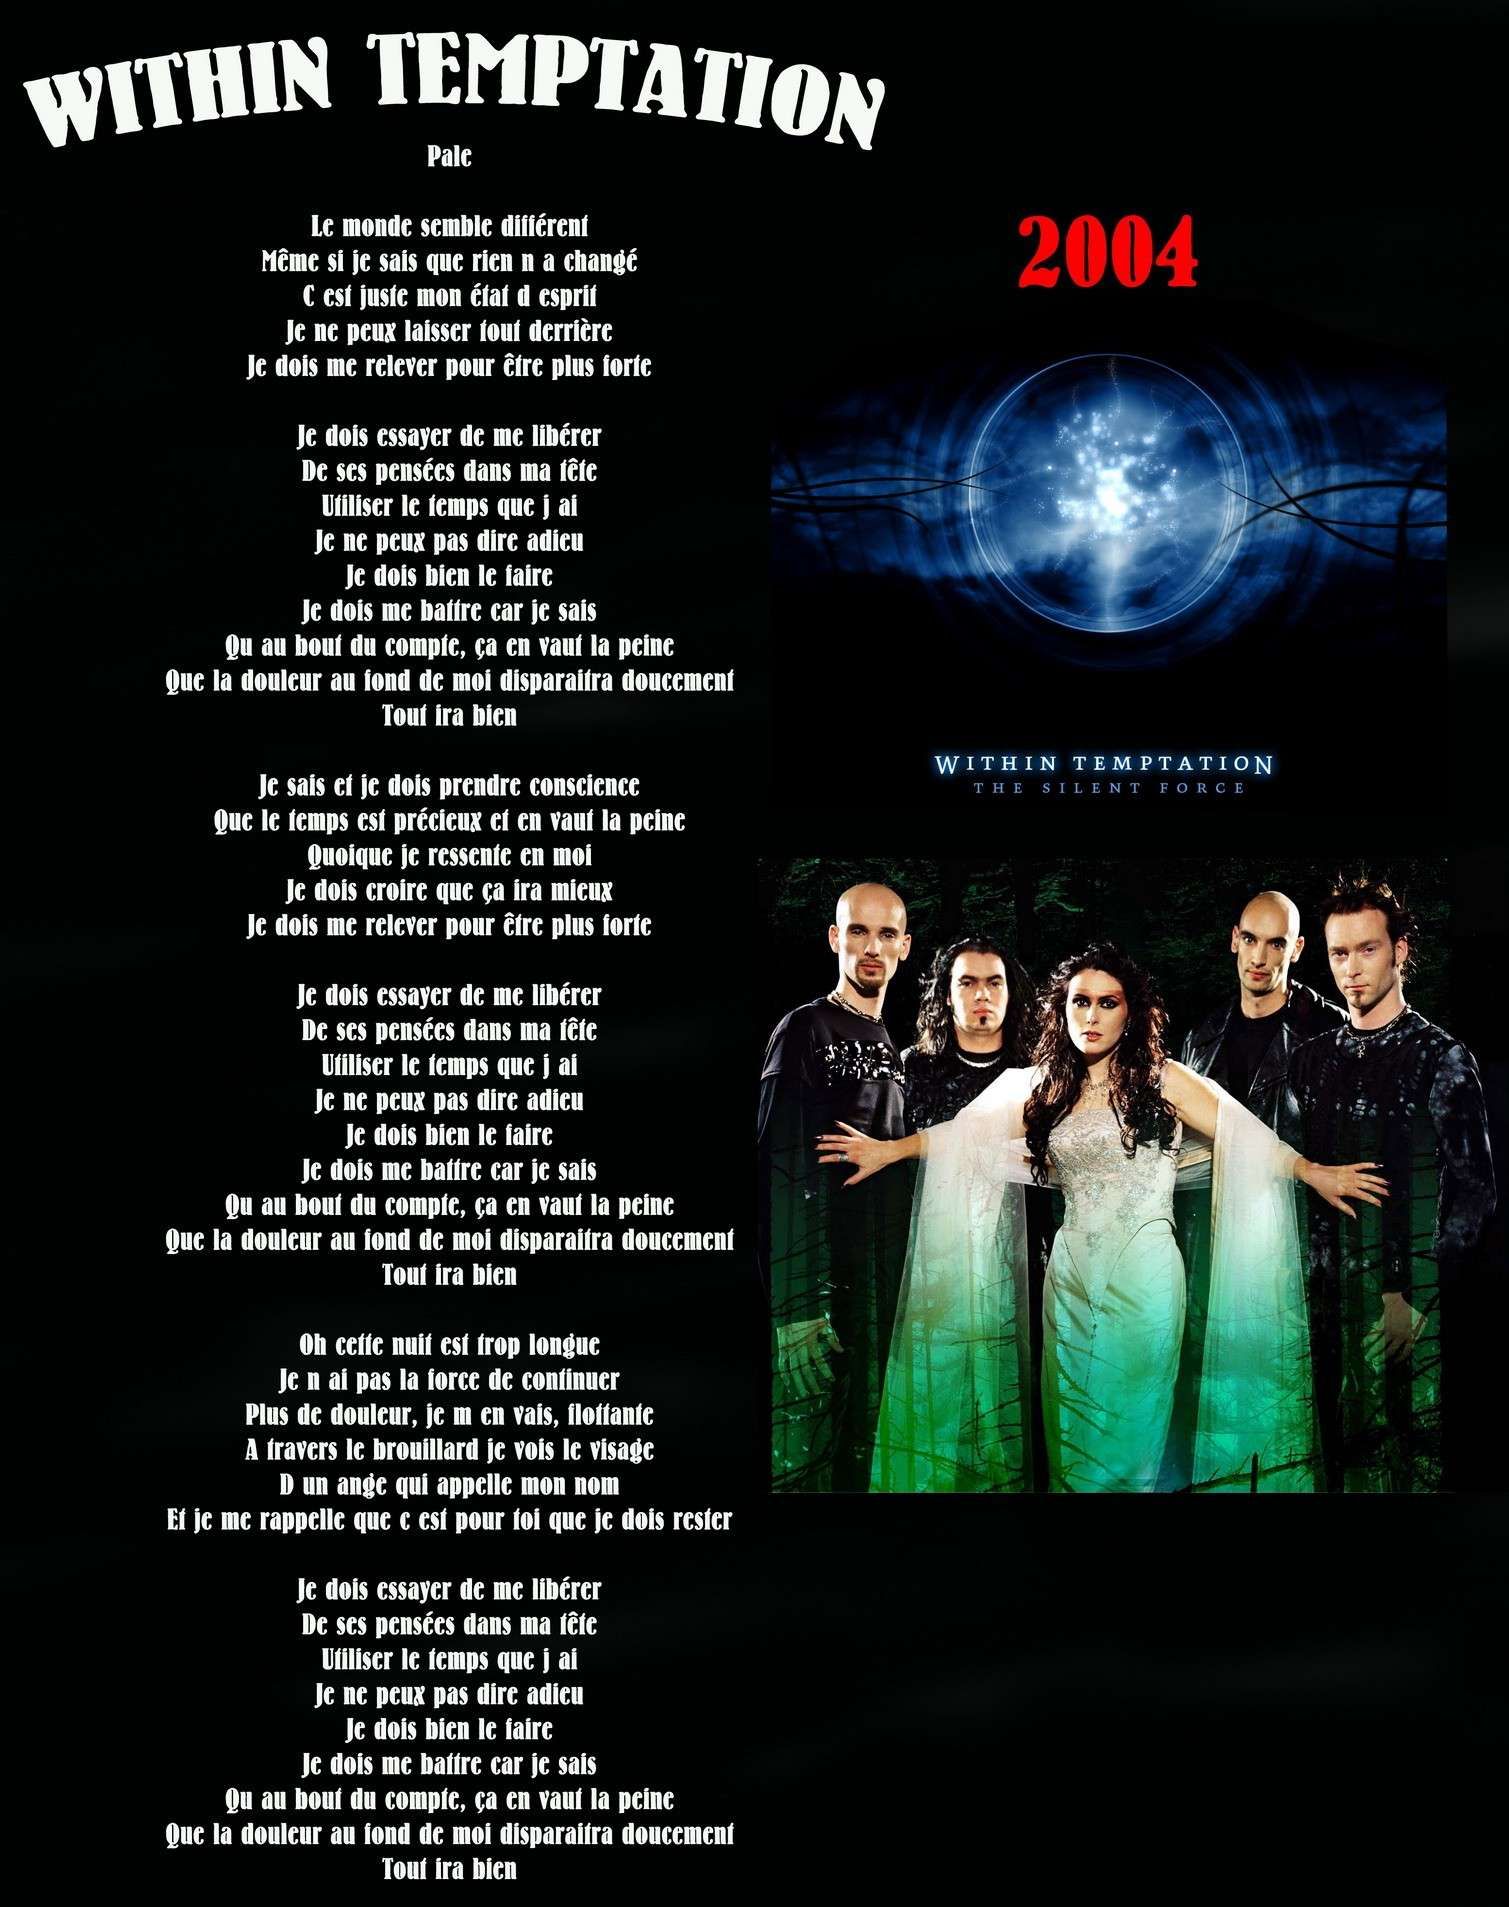 WITHIN TEMPTATION Pale (2004) Within10